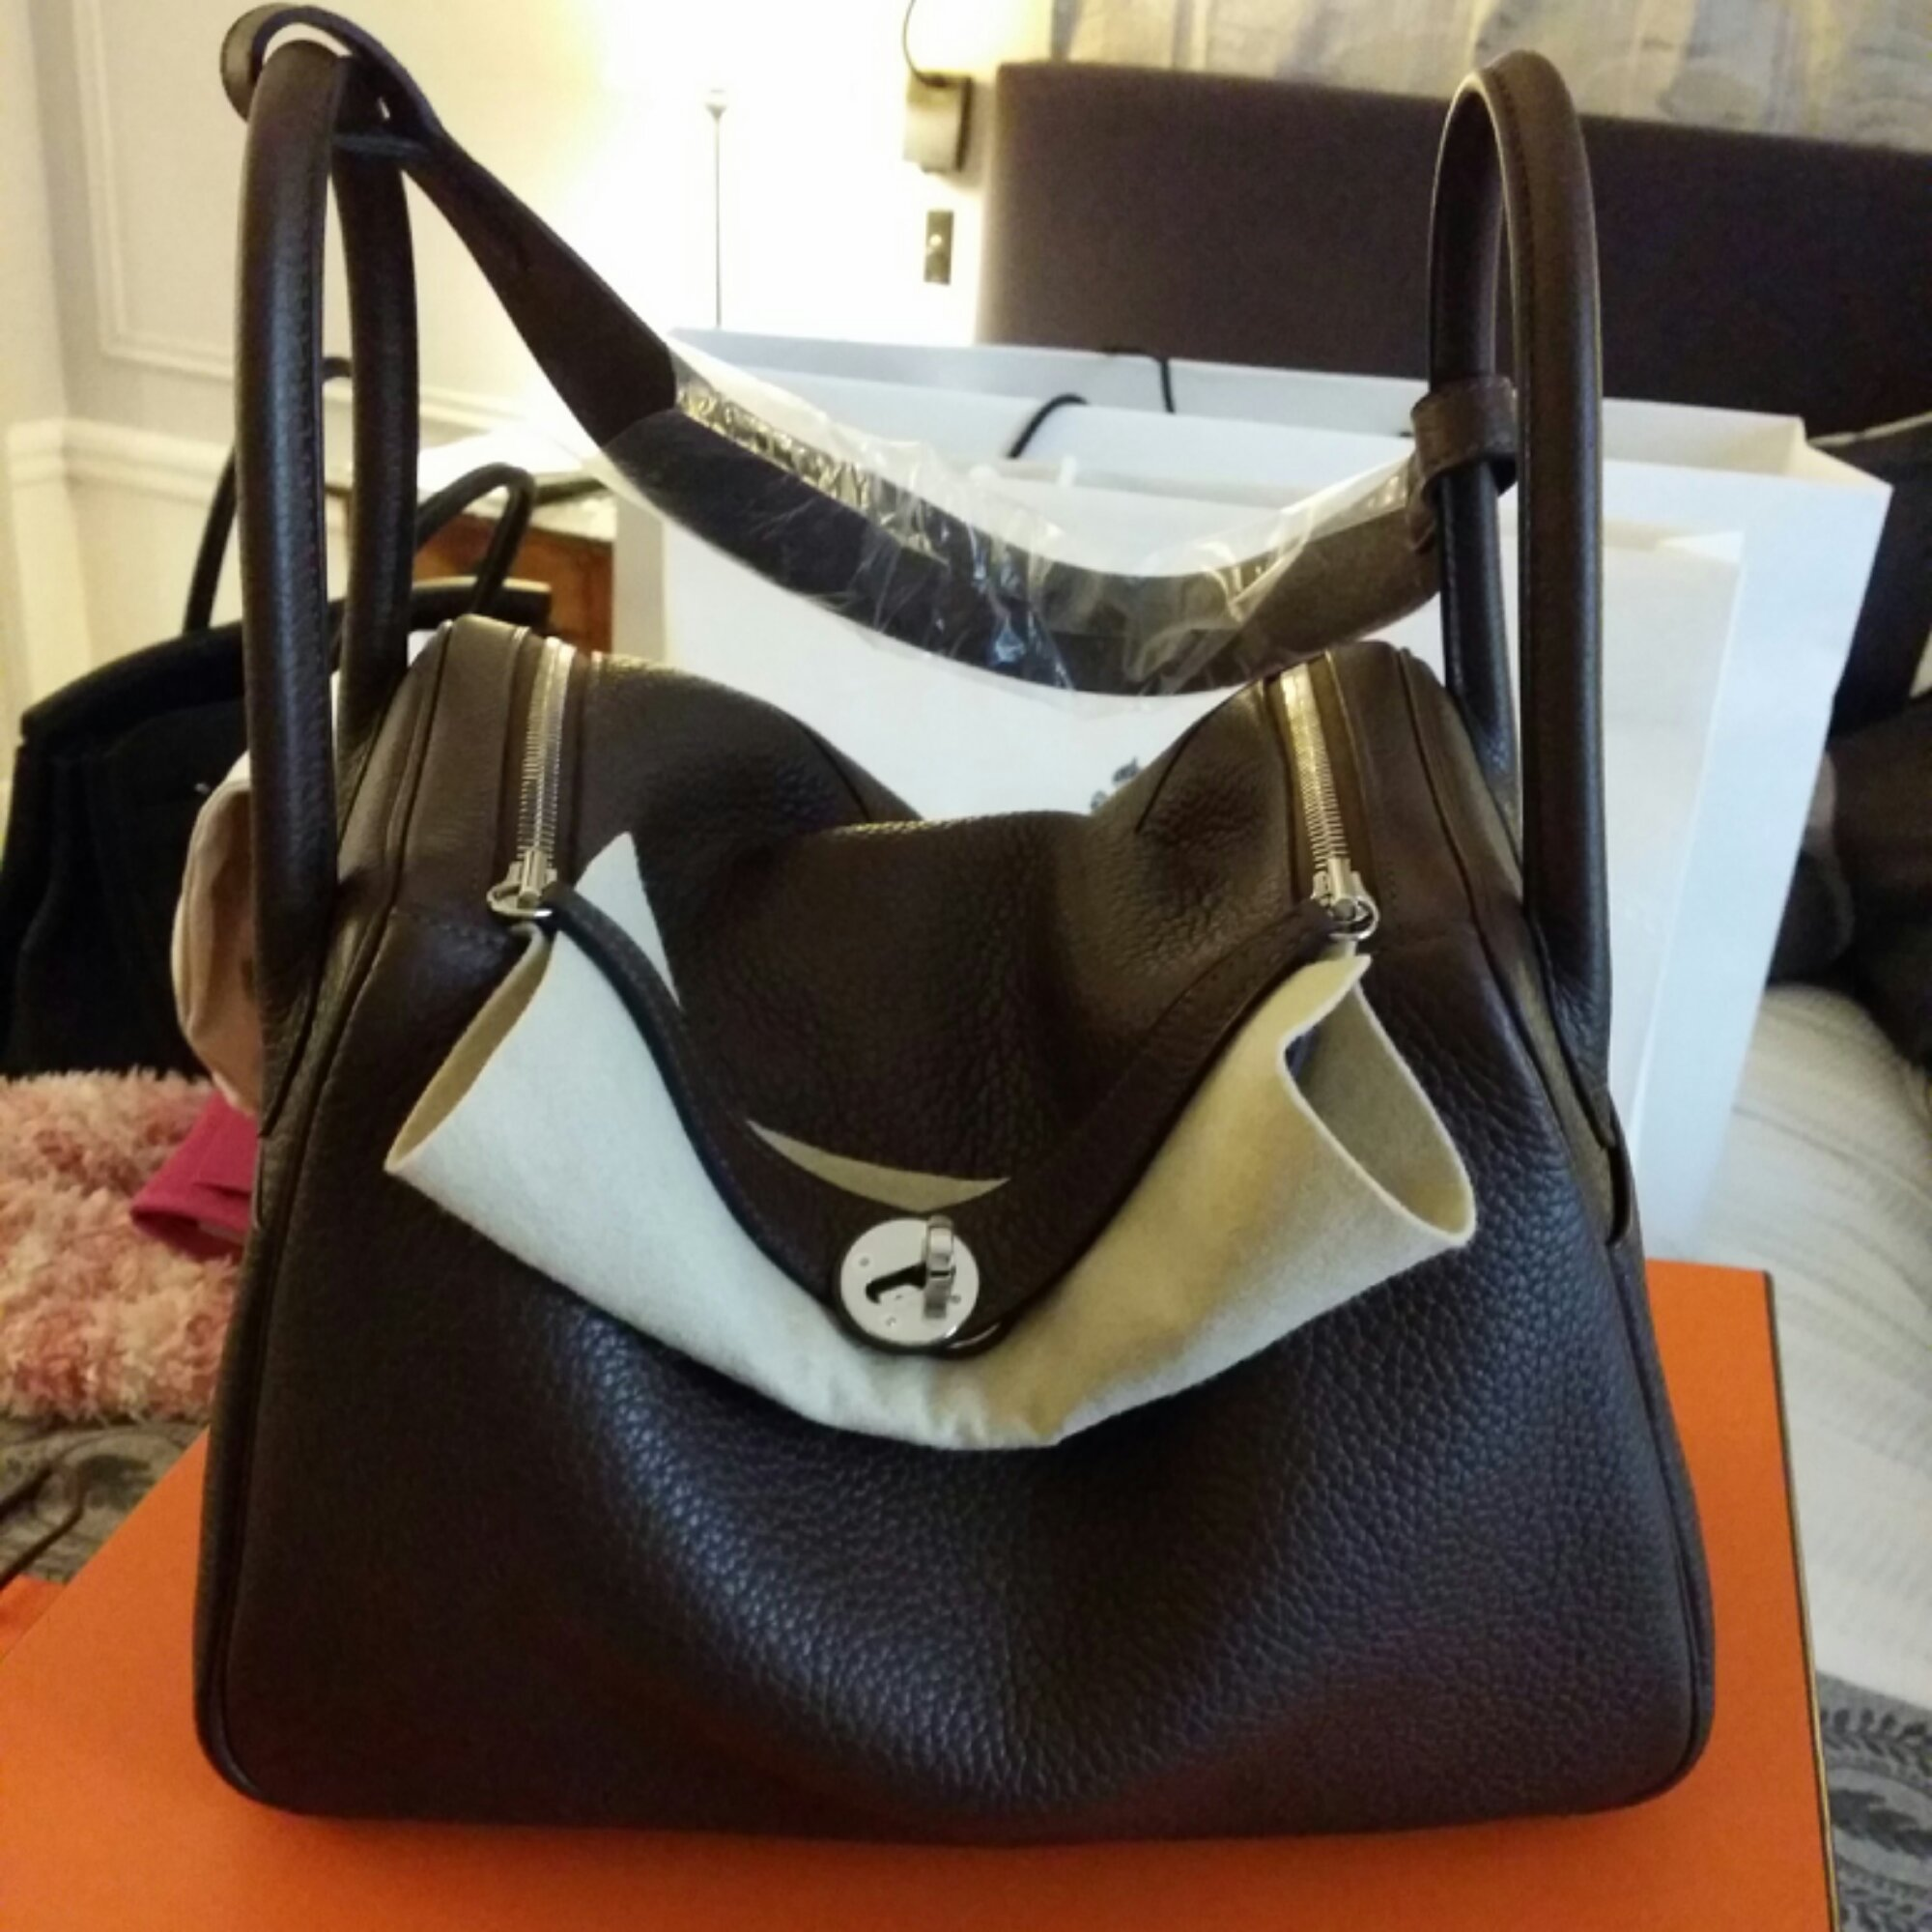 ((SOLD))Brand new in box Hermes Lindy 30 in Cacao! | Ciaciasg's Blog